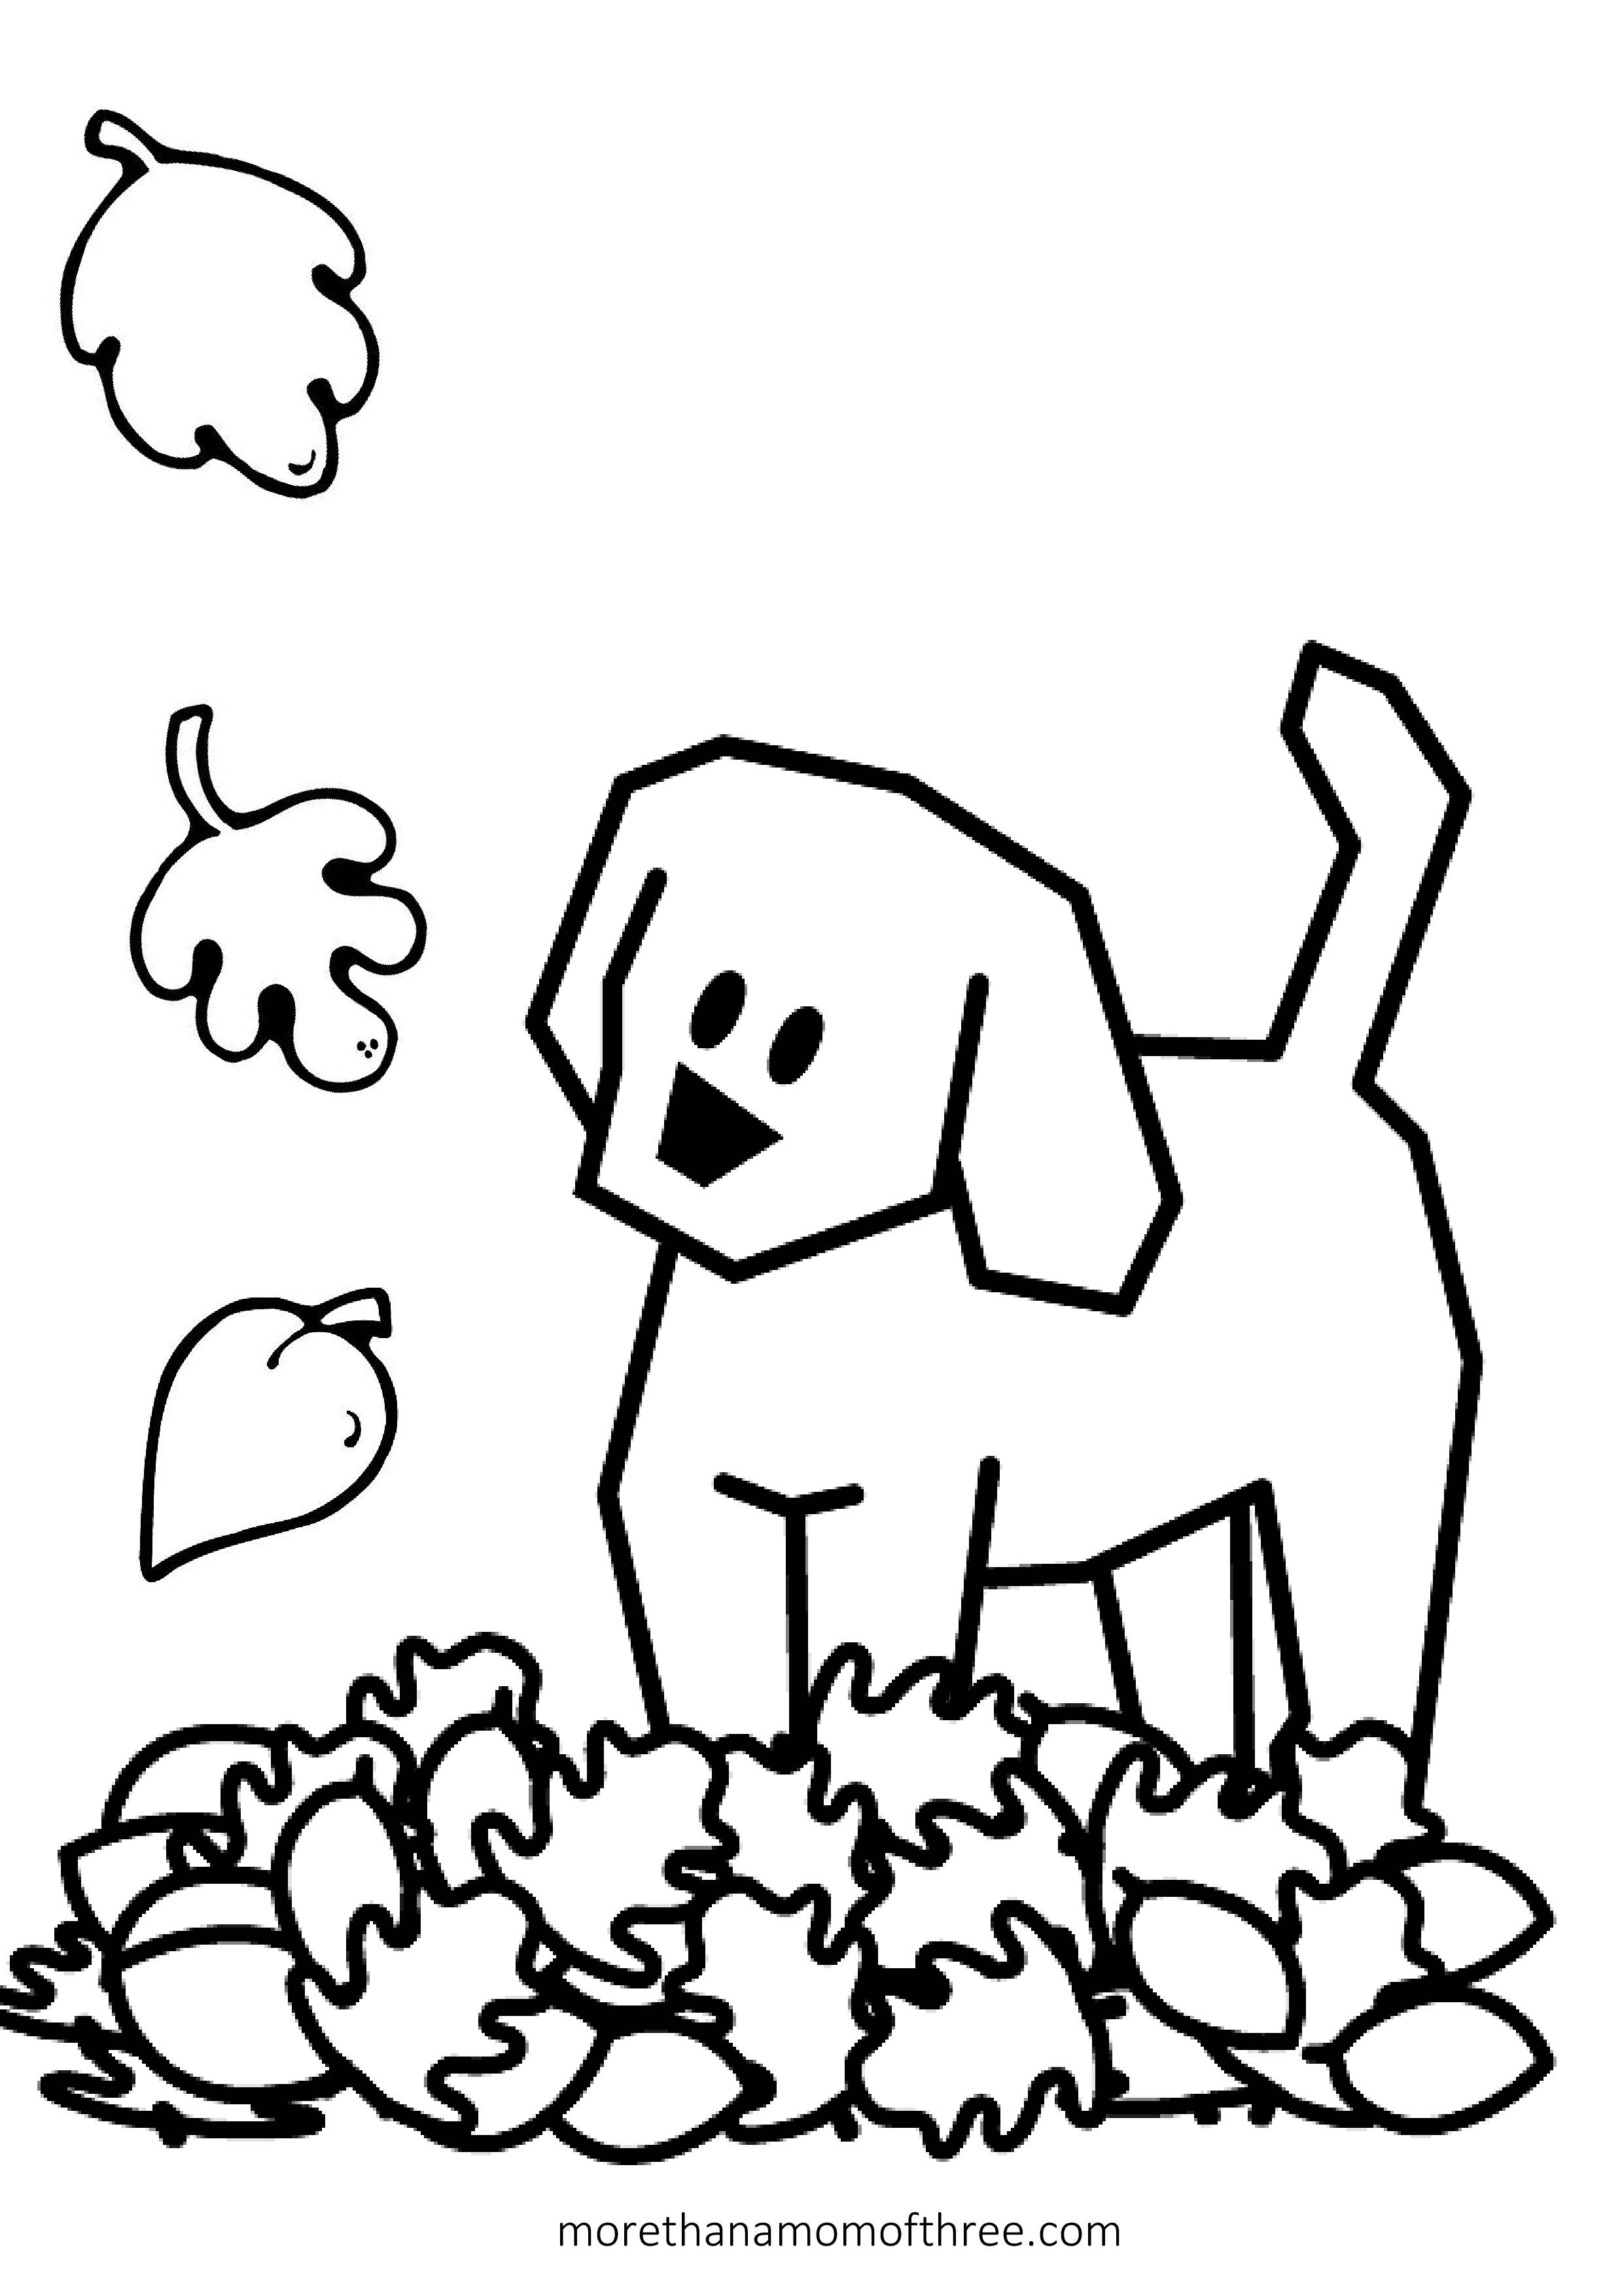 Free Thanksgiving Coloring Pages For Preschoolers At